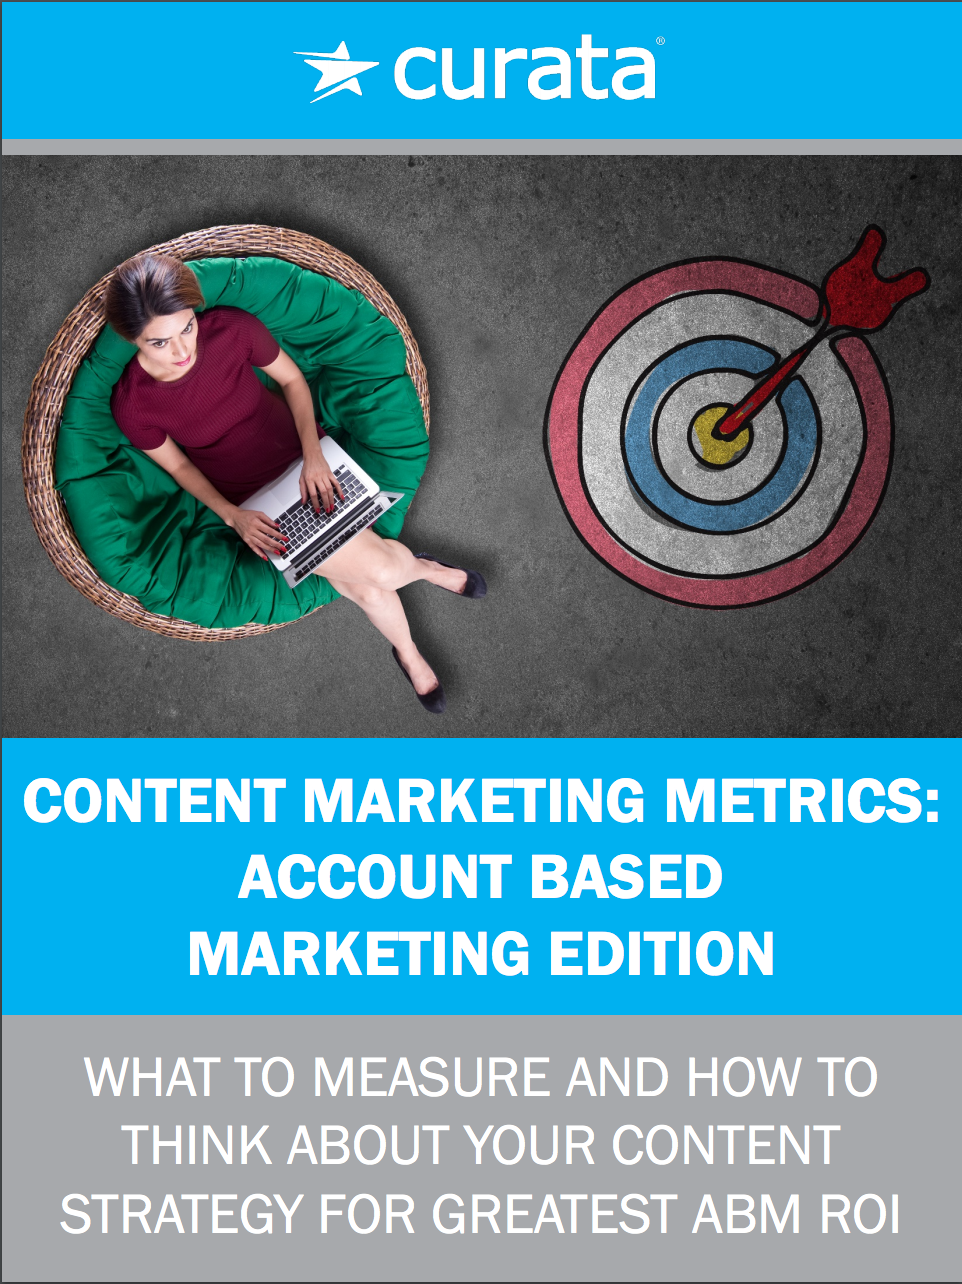 Content Marketing Metrics: Account Based Marketing Edition